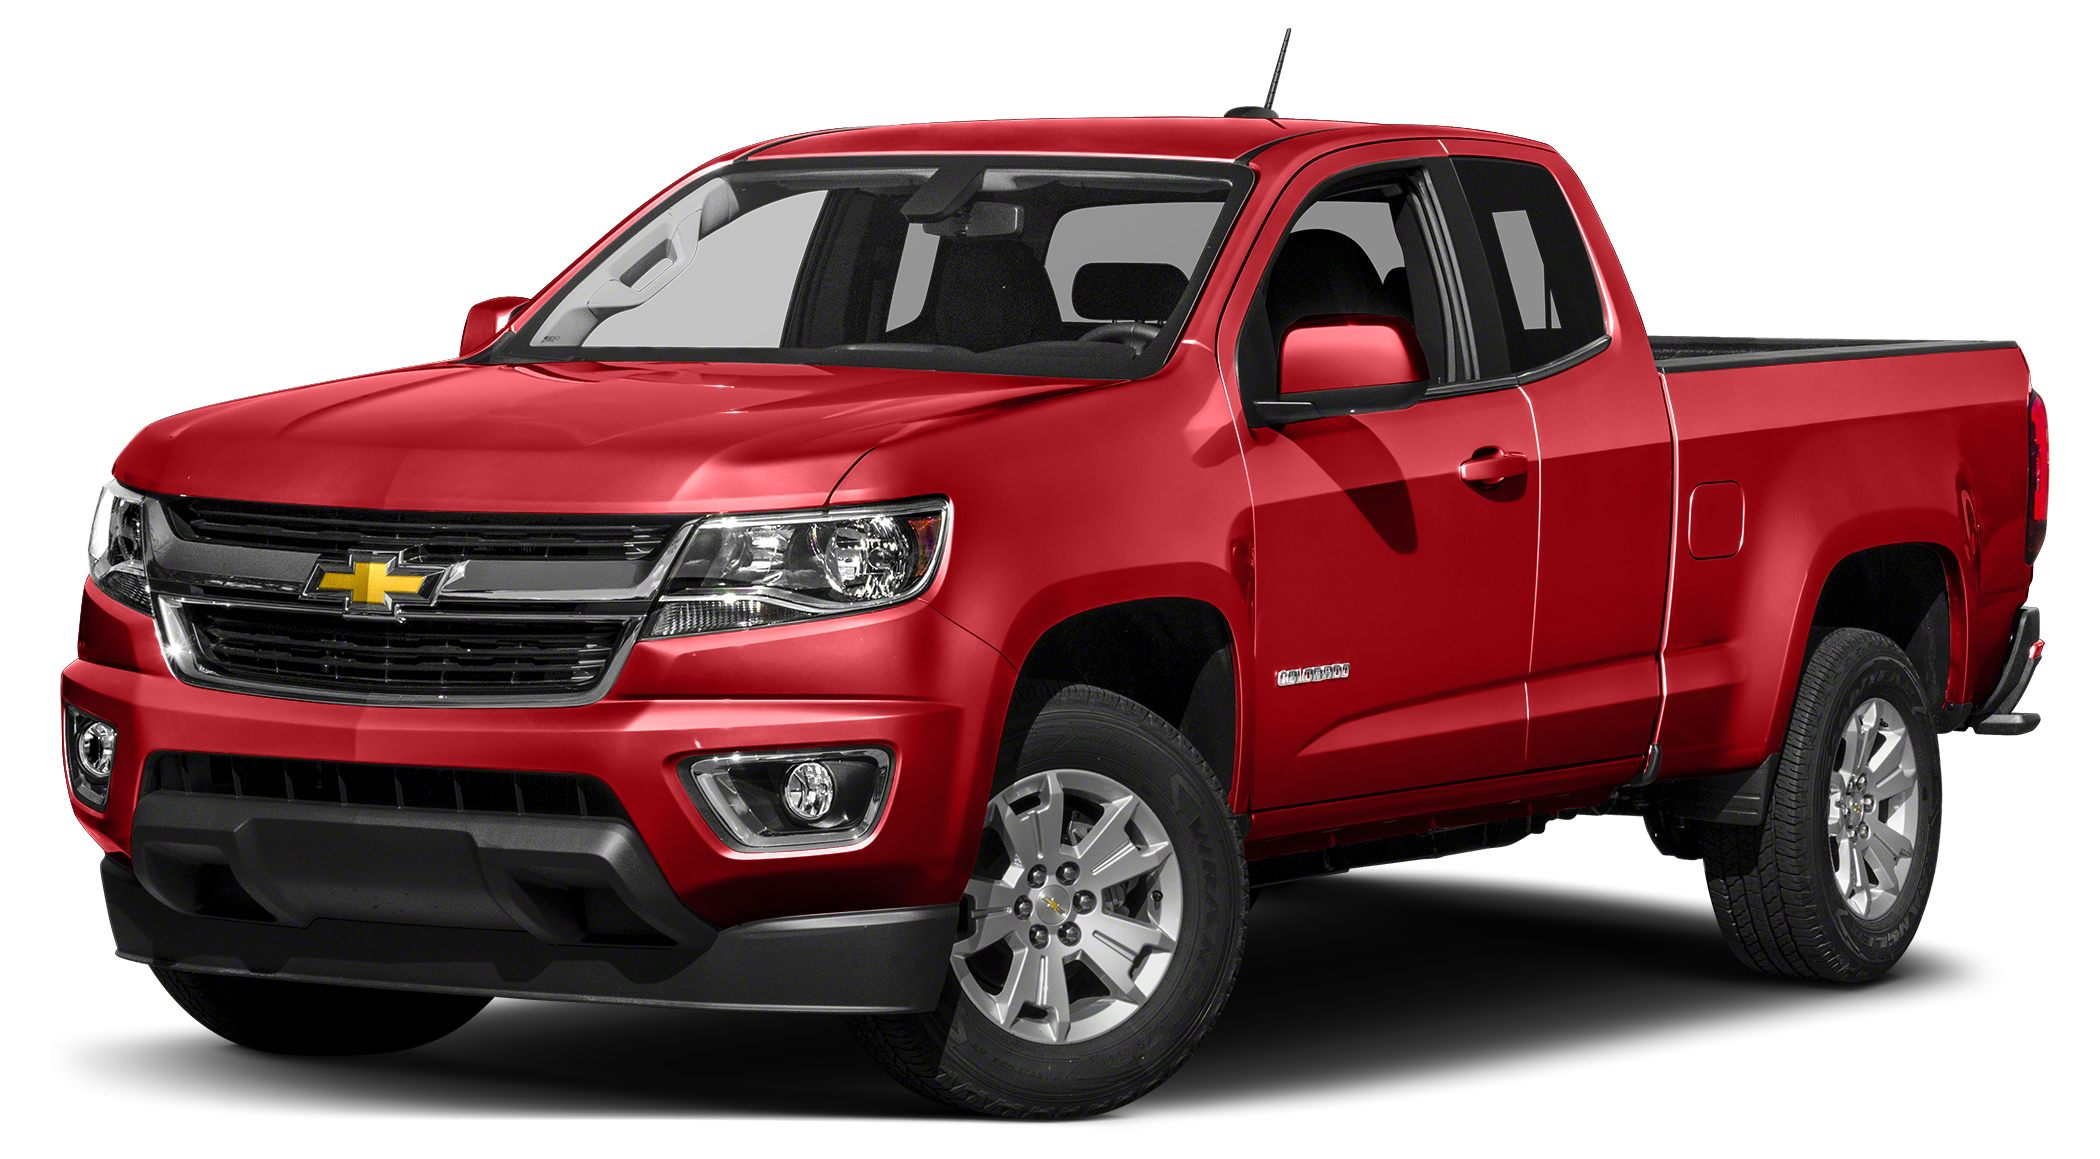 2016 Chevrolet Colorado LT ONLY 17680 Miles EPA 27 MPG Hwy20 MPG City 2WD LT trim LT CONVENIE